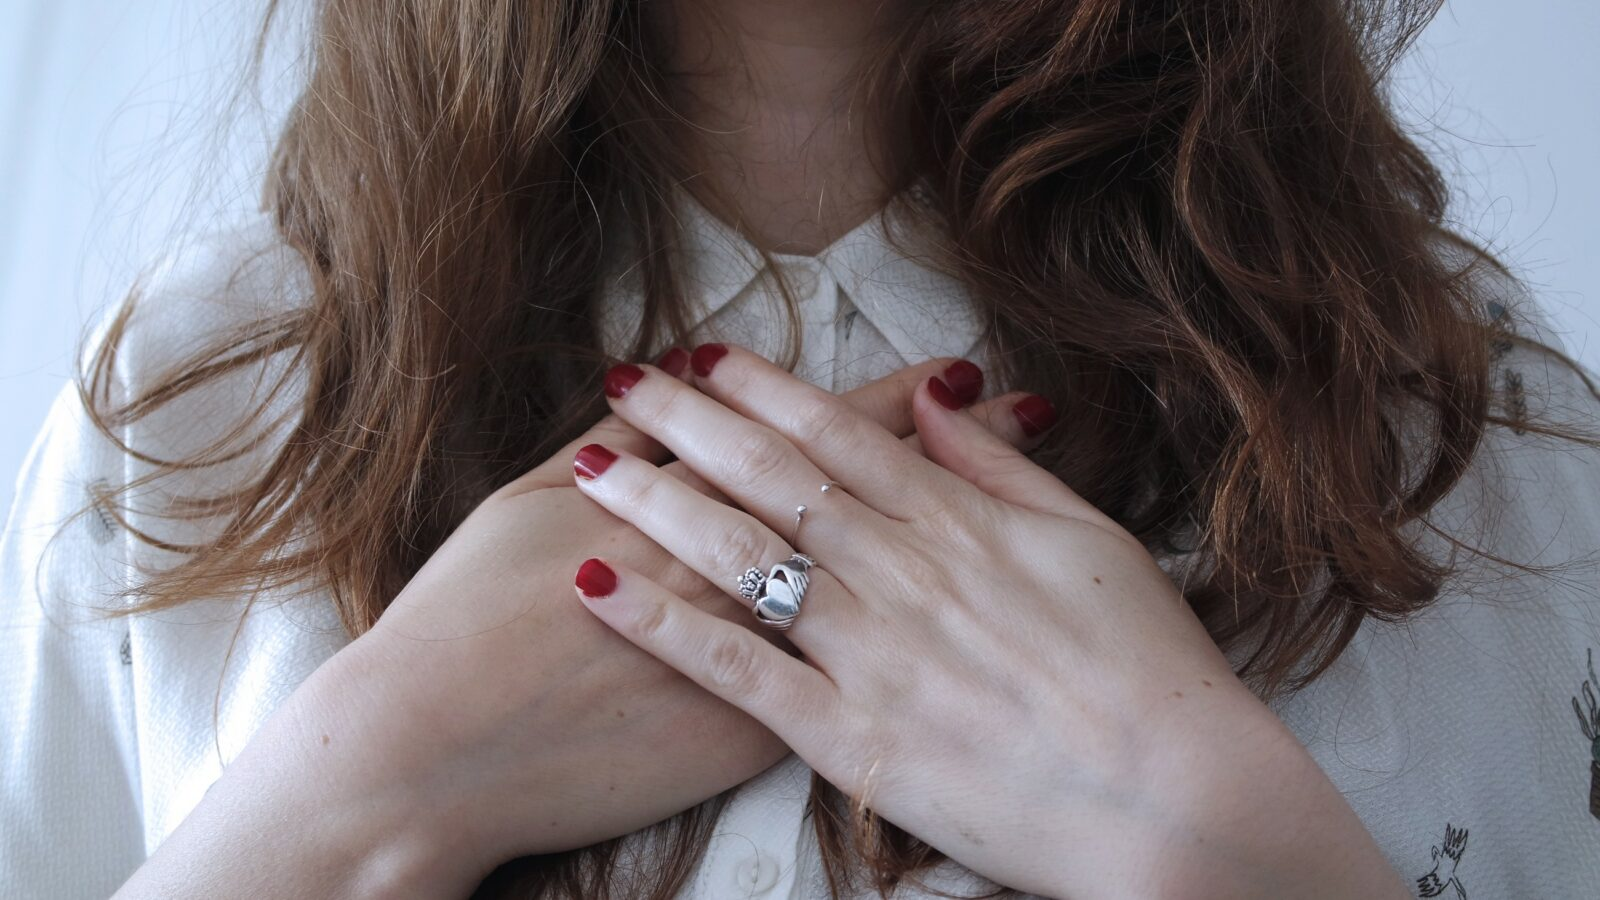 Close up of lady from chin down, primary focus on hands crossed under throat. Red nails and one ring.